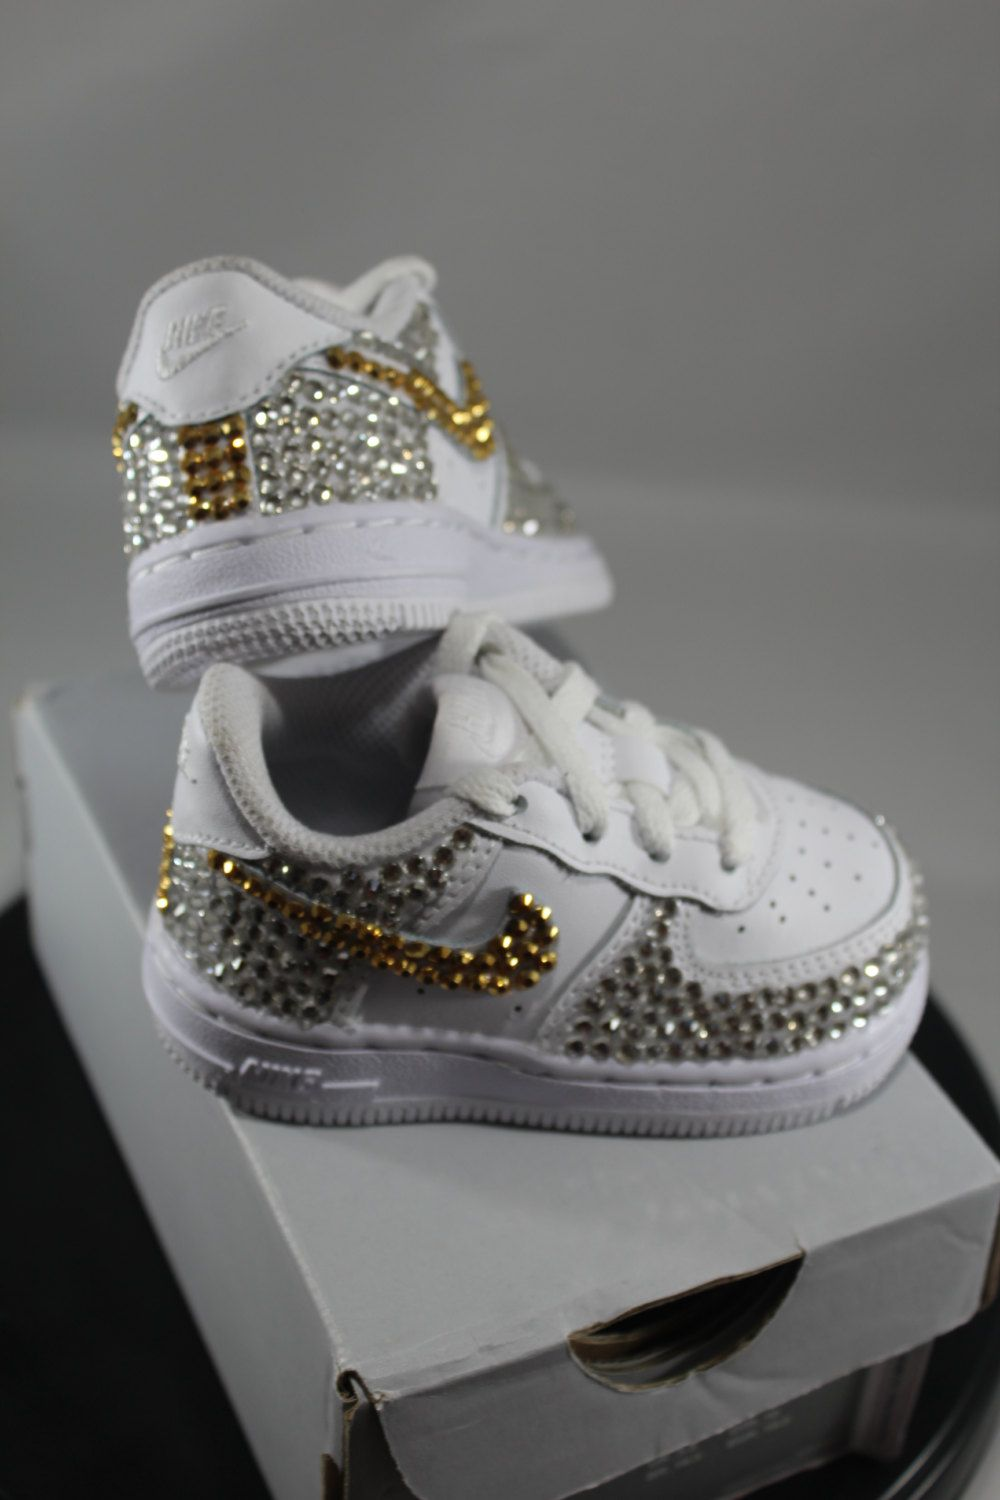 Custom Bling Air Force Ones- Bling Tennis Shoes- Bling   Pearls- Baby Bling  Nikes- AF1s- Custom Tennis Shoes- Bedazzled Nikes- Bling Shoes by ... 95fcf549c